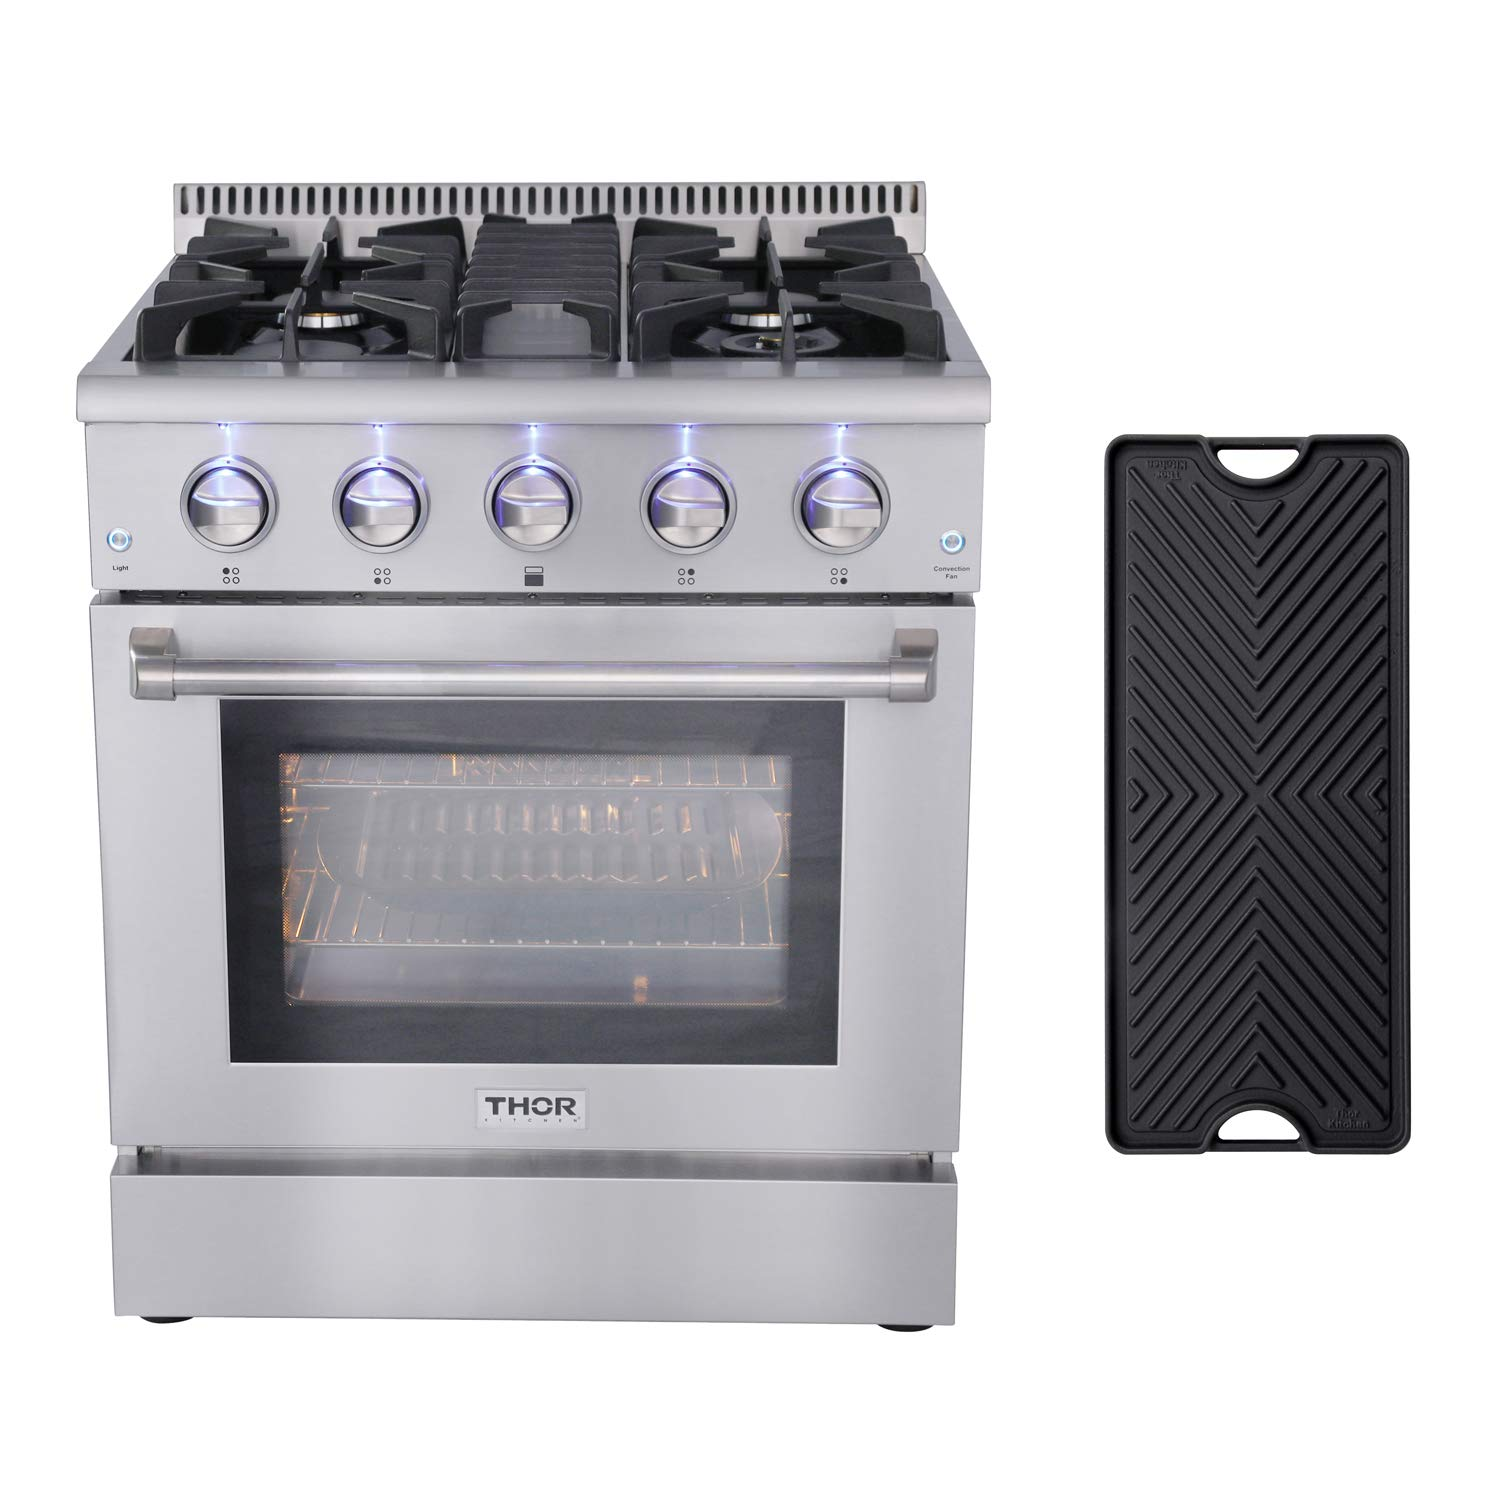 Thor Kitchen HRG3080U 30'' Gas Range Freestanding Professional Style with 4.2 cu.ft Convection Oven in Stainless Steel, 4 Burners, Cast-Iron Reversible Griddle